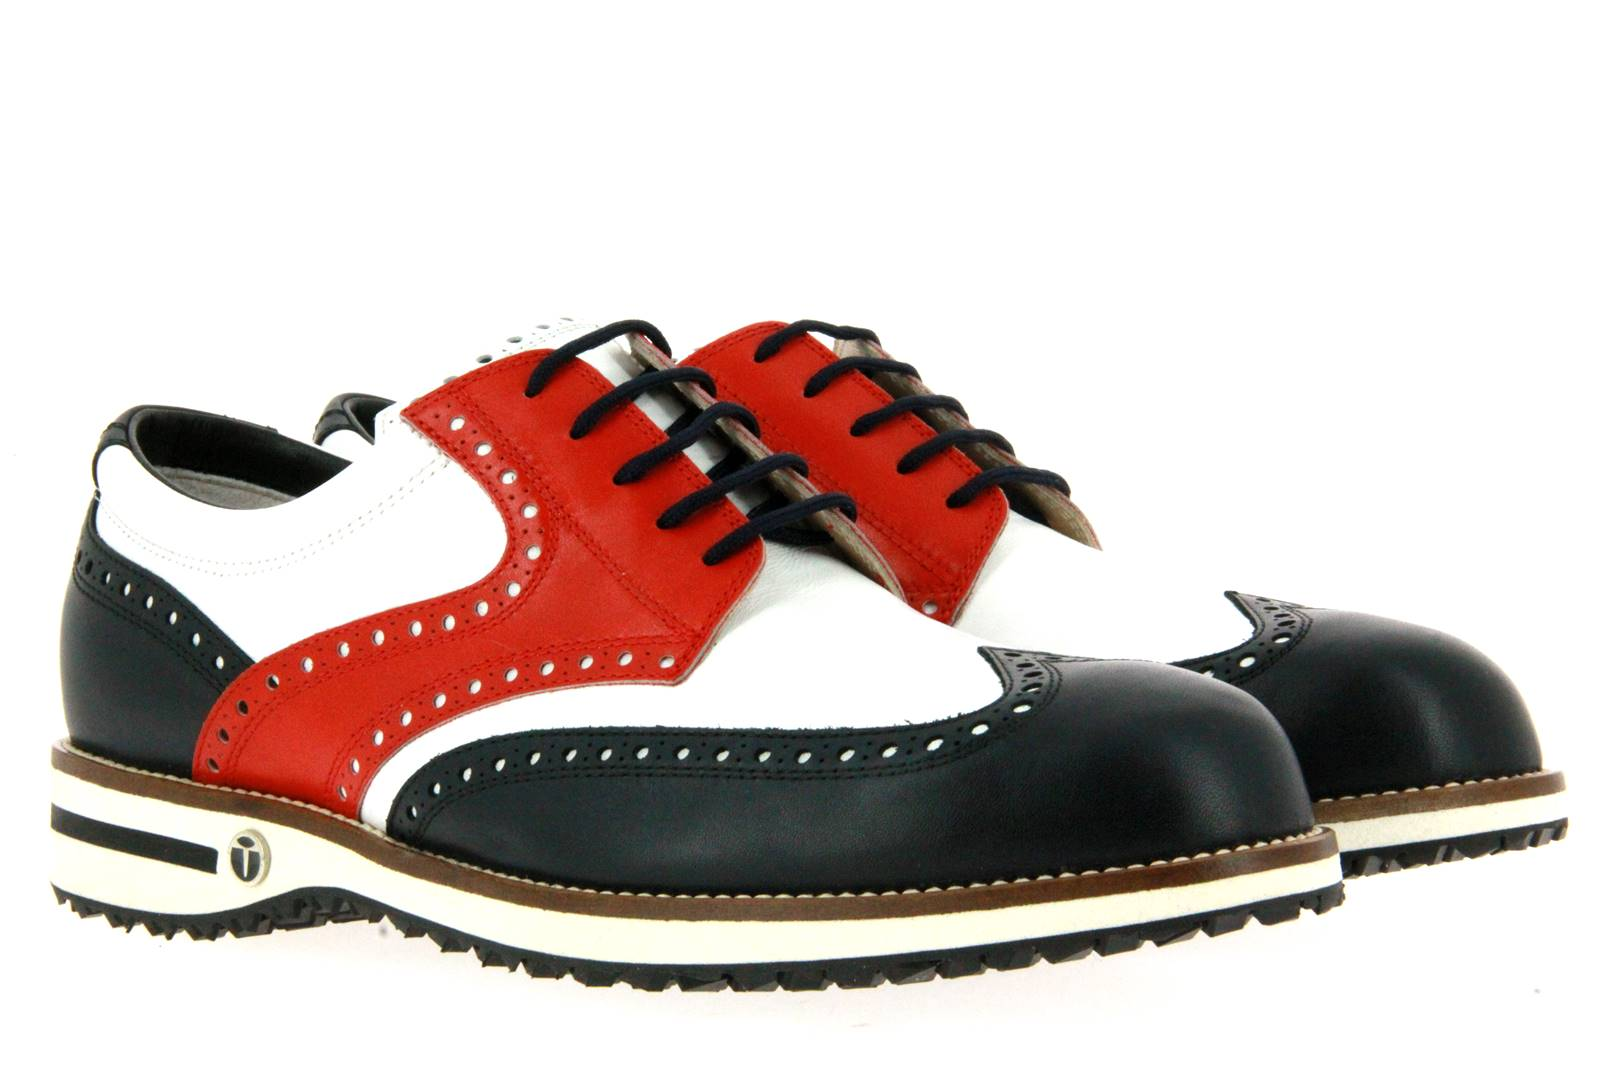 Tee Golf Shoes men's golf shoe TOMMY BLU BIANCO ROSSO MICRO N/B